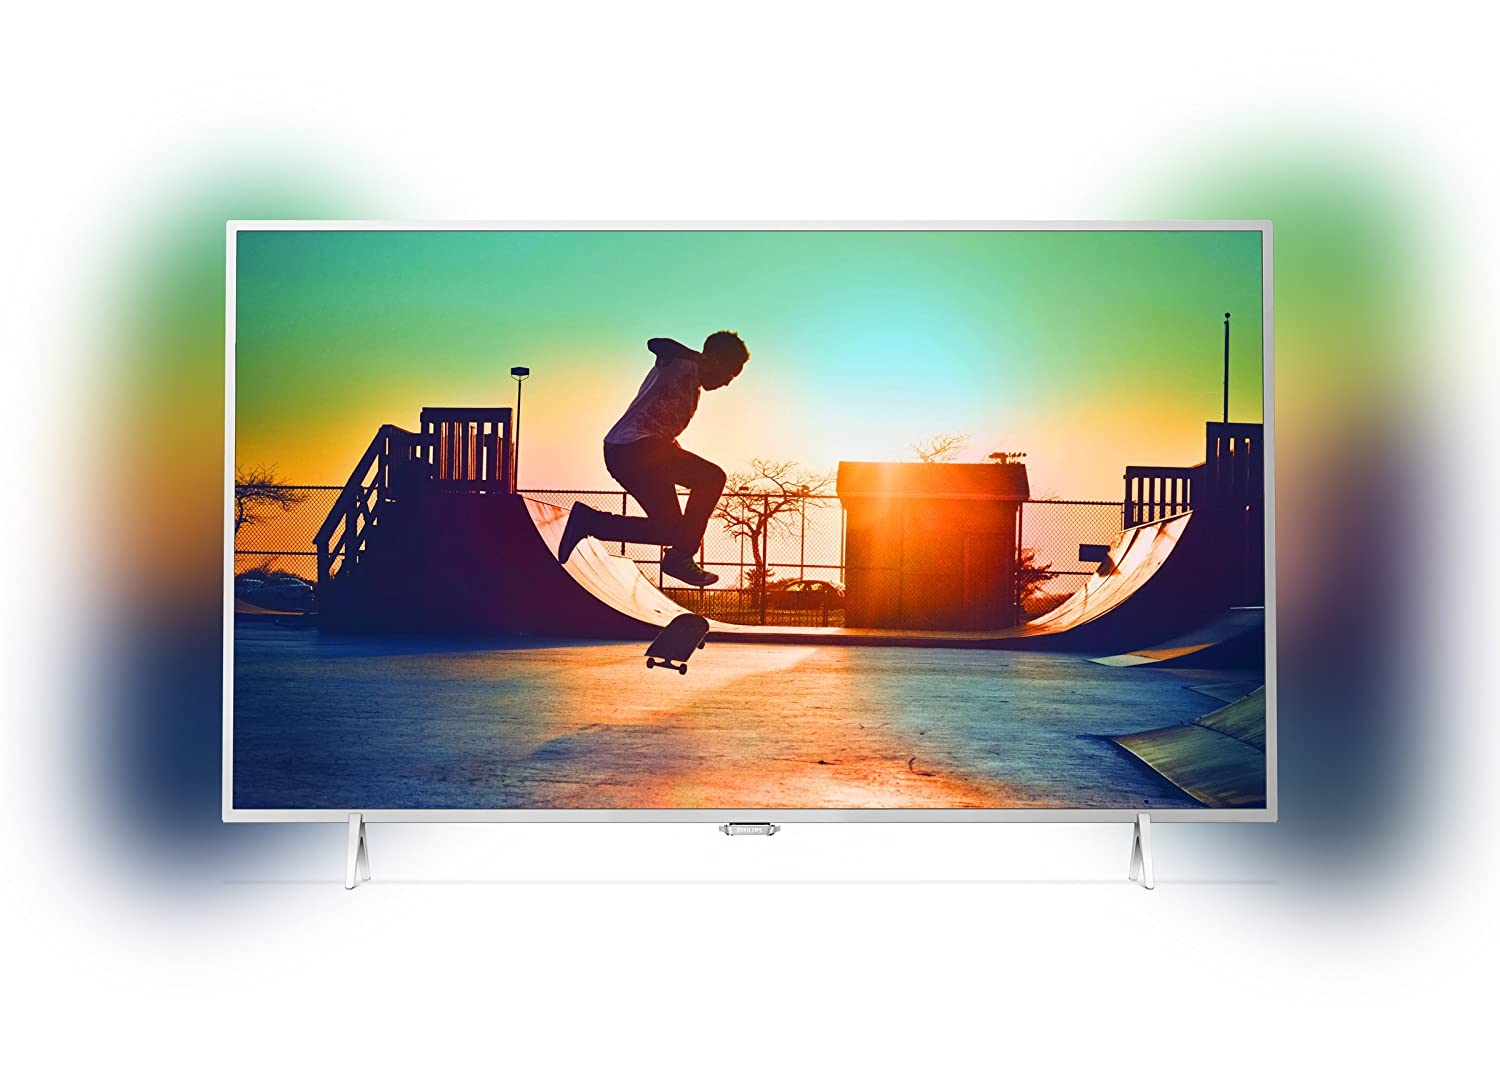 LCD LED PHILIPS PFS FHD AMBILIGHT SATEL